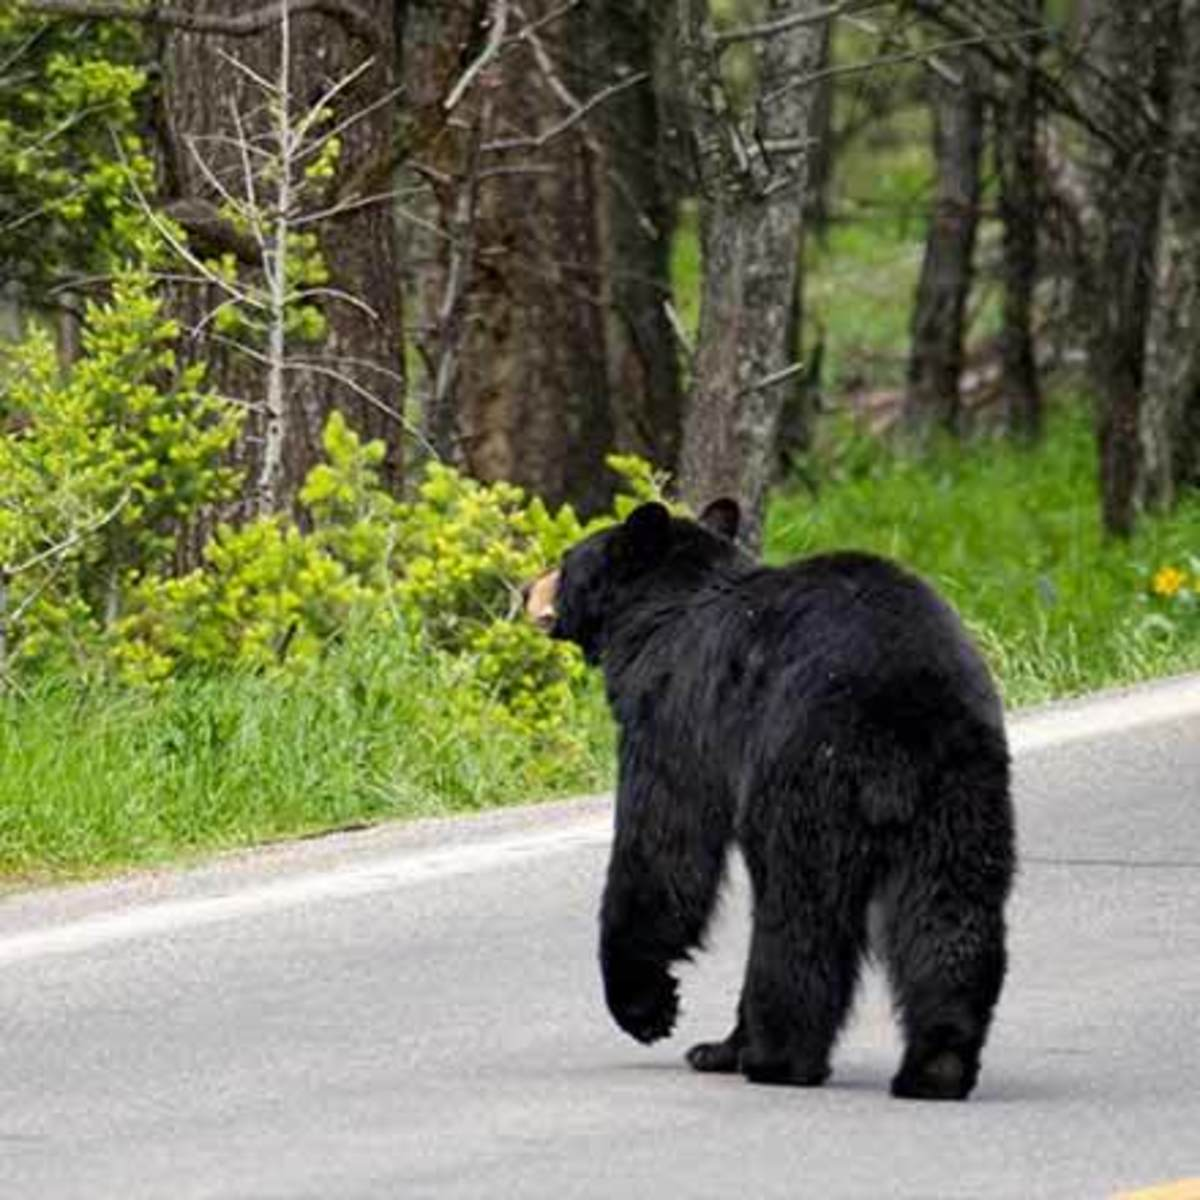 Black bears are often seen ambling alongside or across mountain roads.